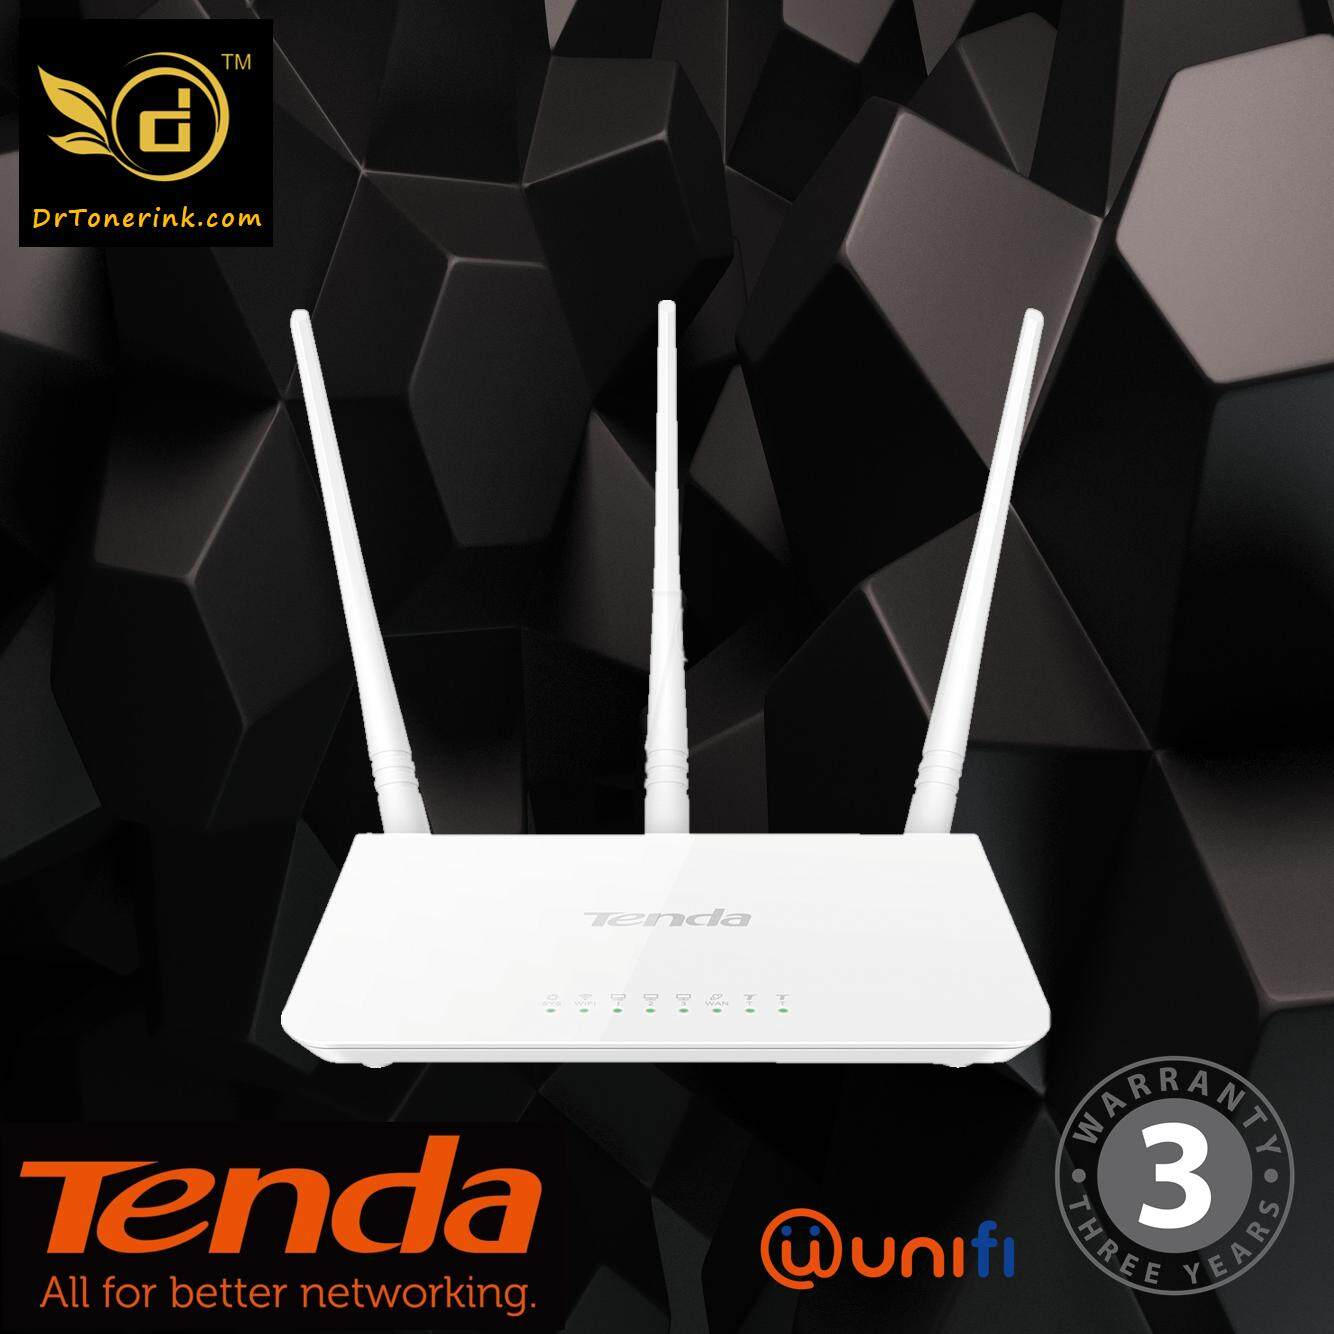 Tenda Unifi Buy At Best Price In Malaysia Lazada F3 300mbps Easy Setup Router 3x5dbi Wireless Wifi 3in1 For Maxis Fiber By Drtoner